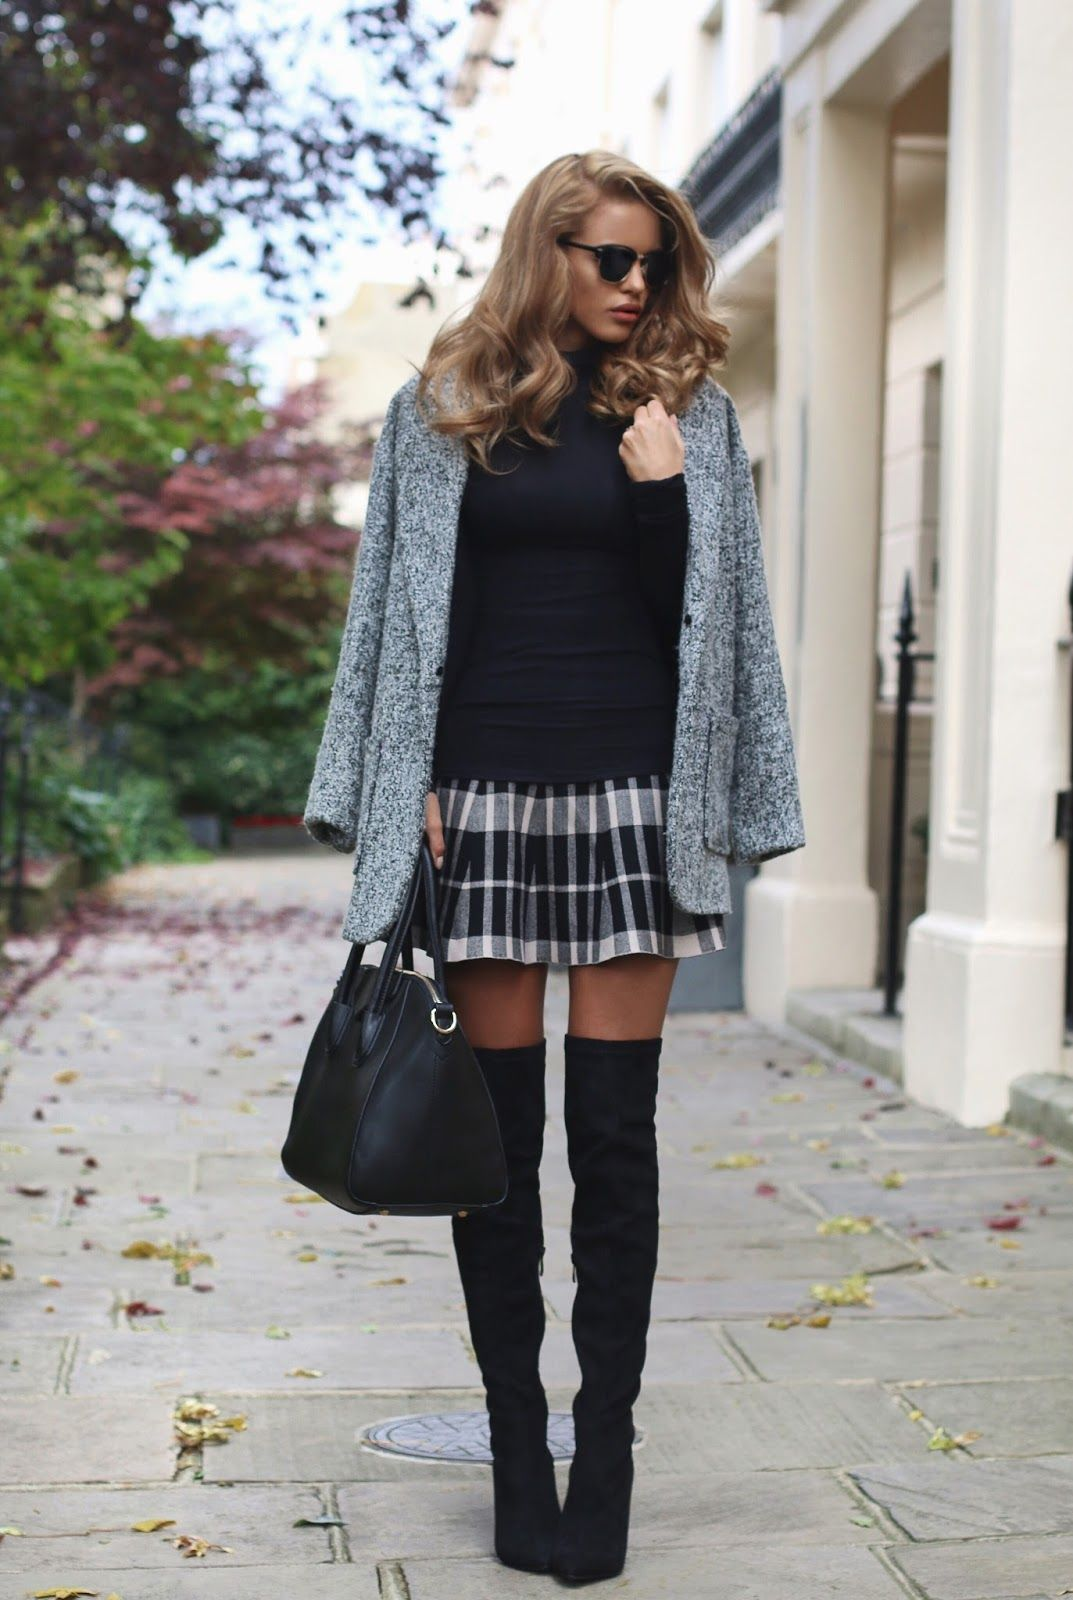 How To Wear Over The Knee Boots In Fall My Style